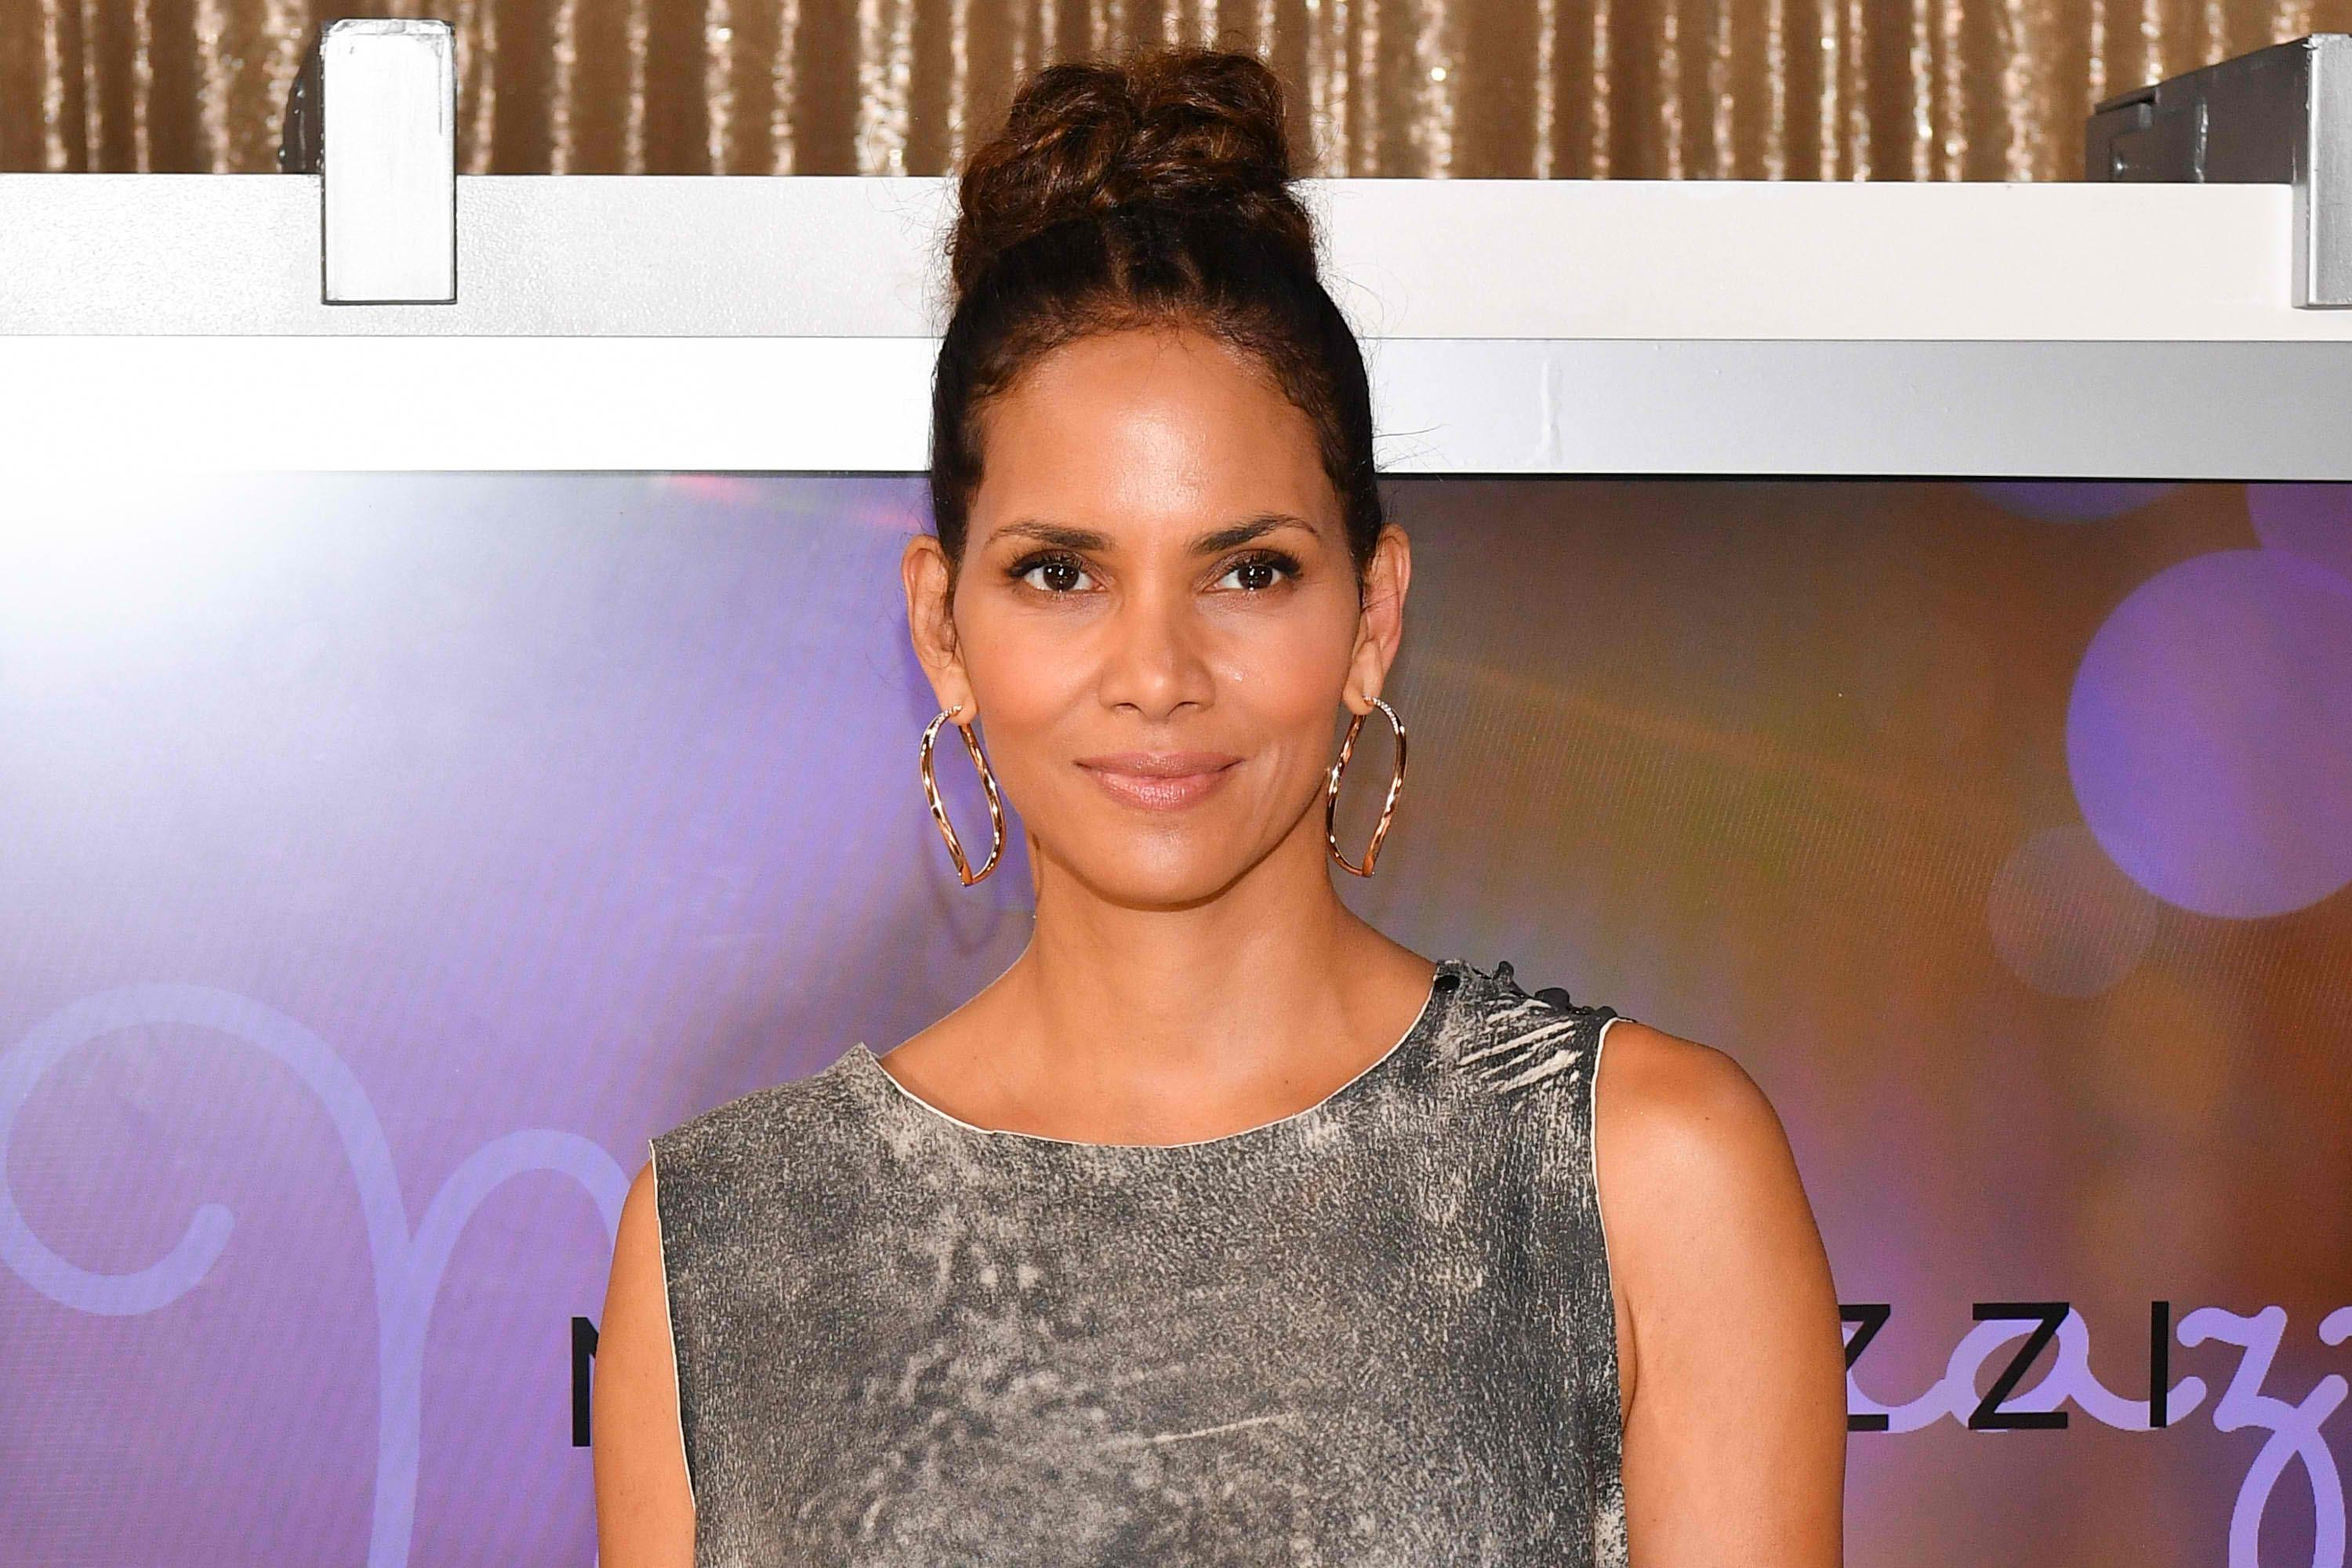 She was fantastic: Halle Berry on Malia Obama as a PA